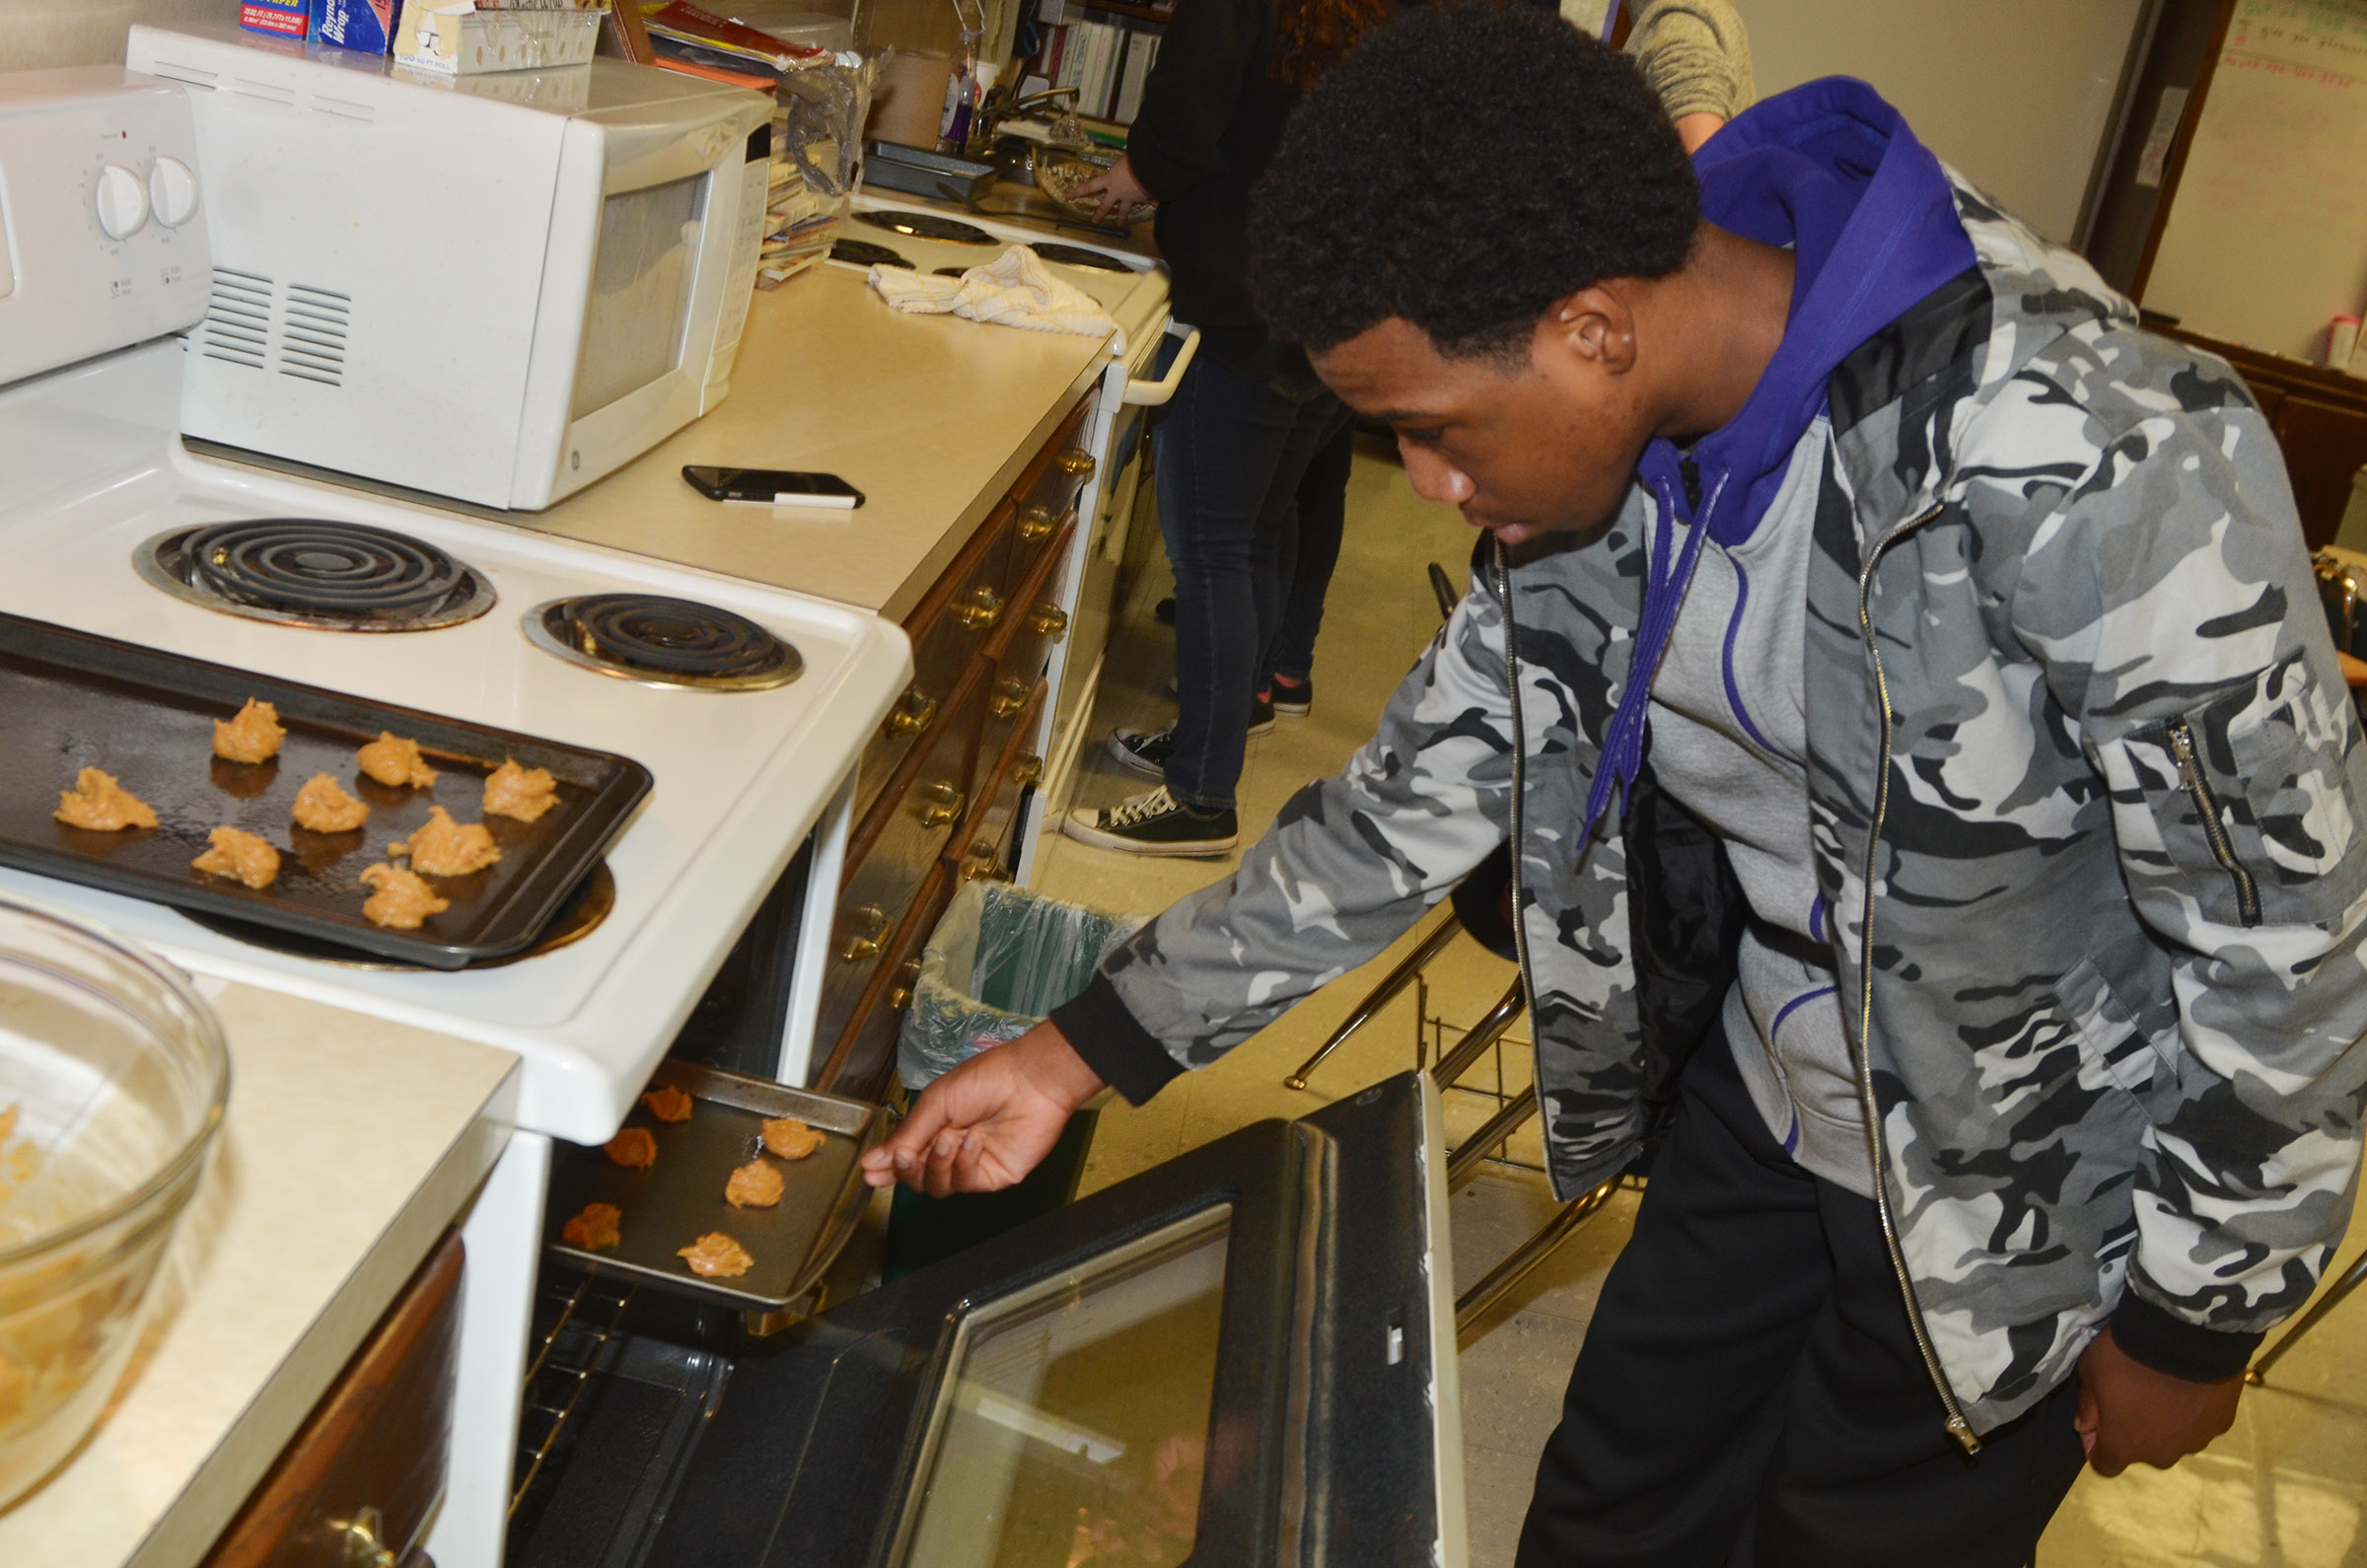 CHS freshman Malachi Corley places his group's peanut butter cookies in the oven.